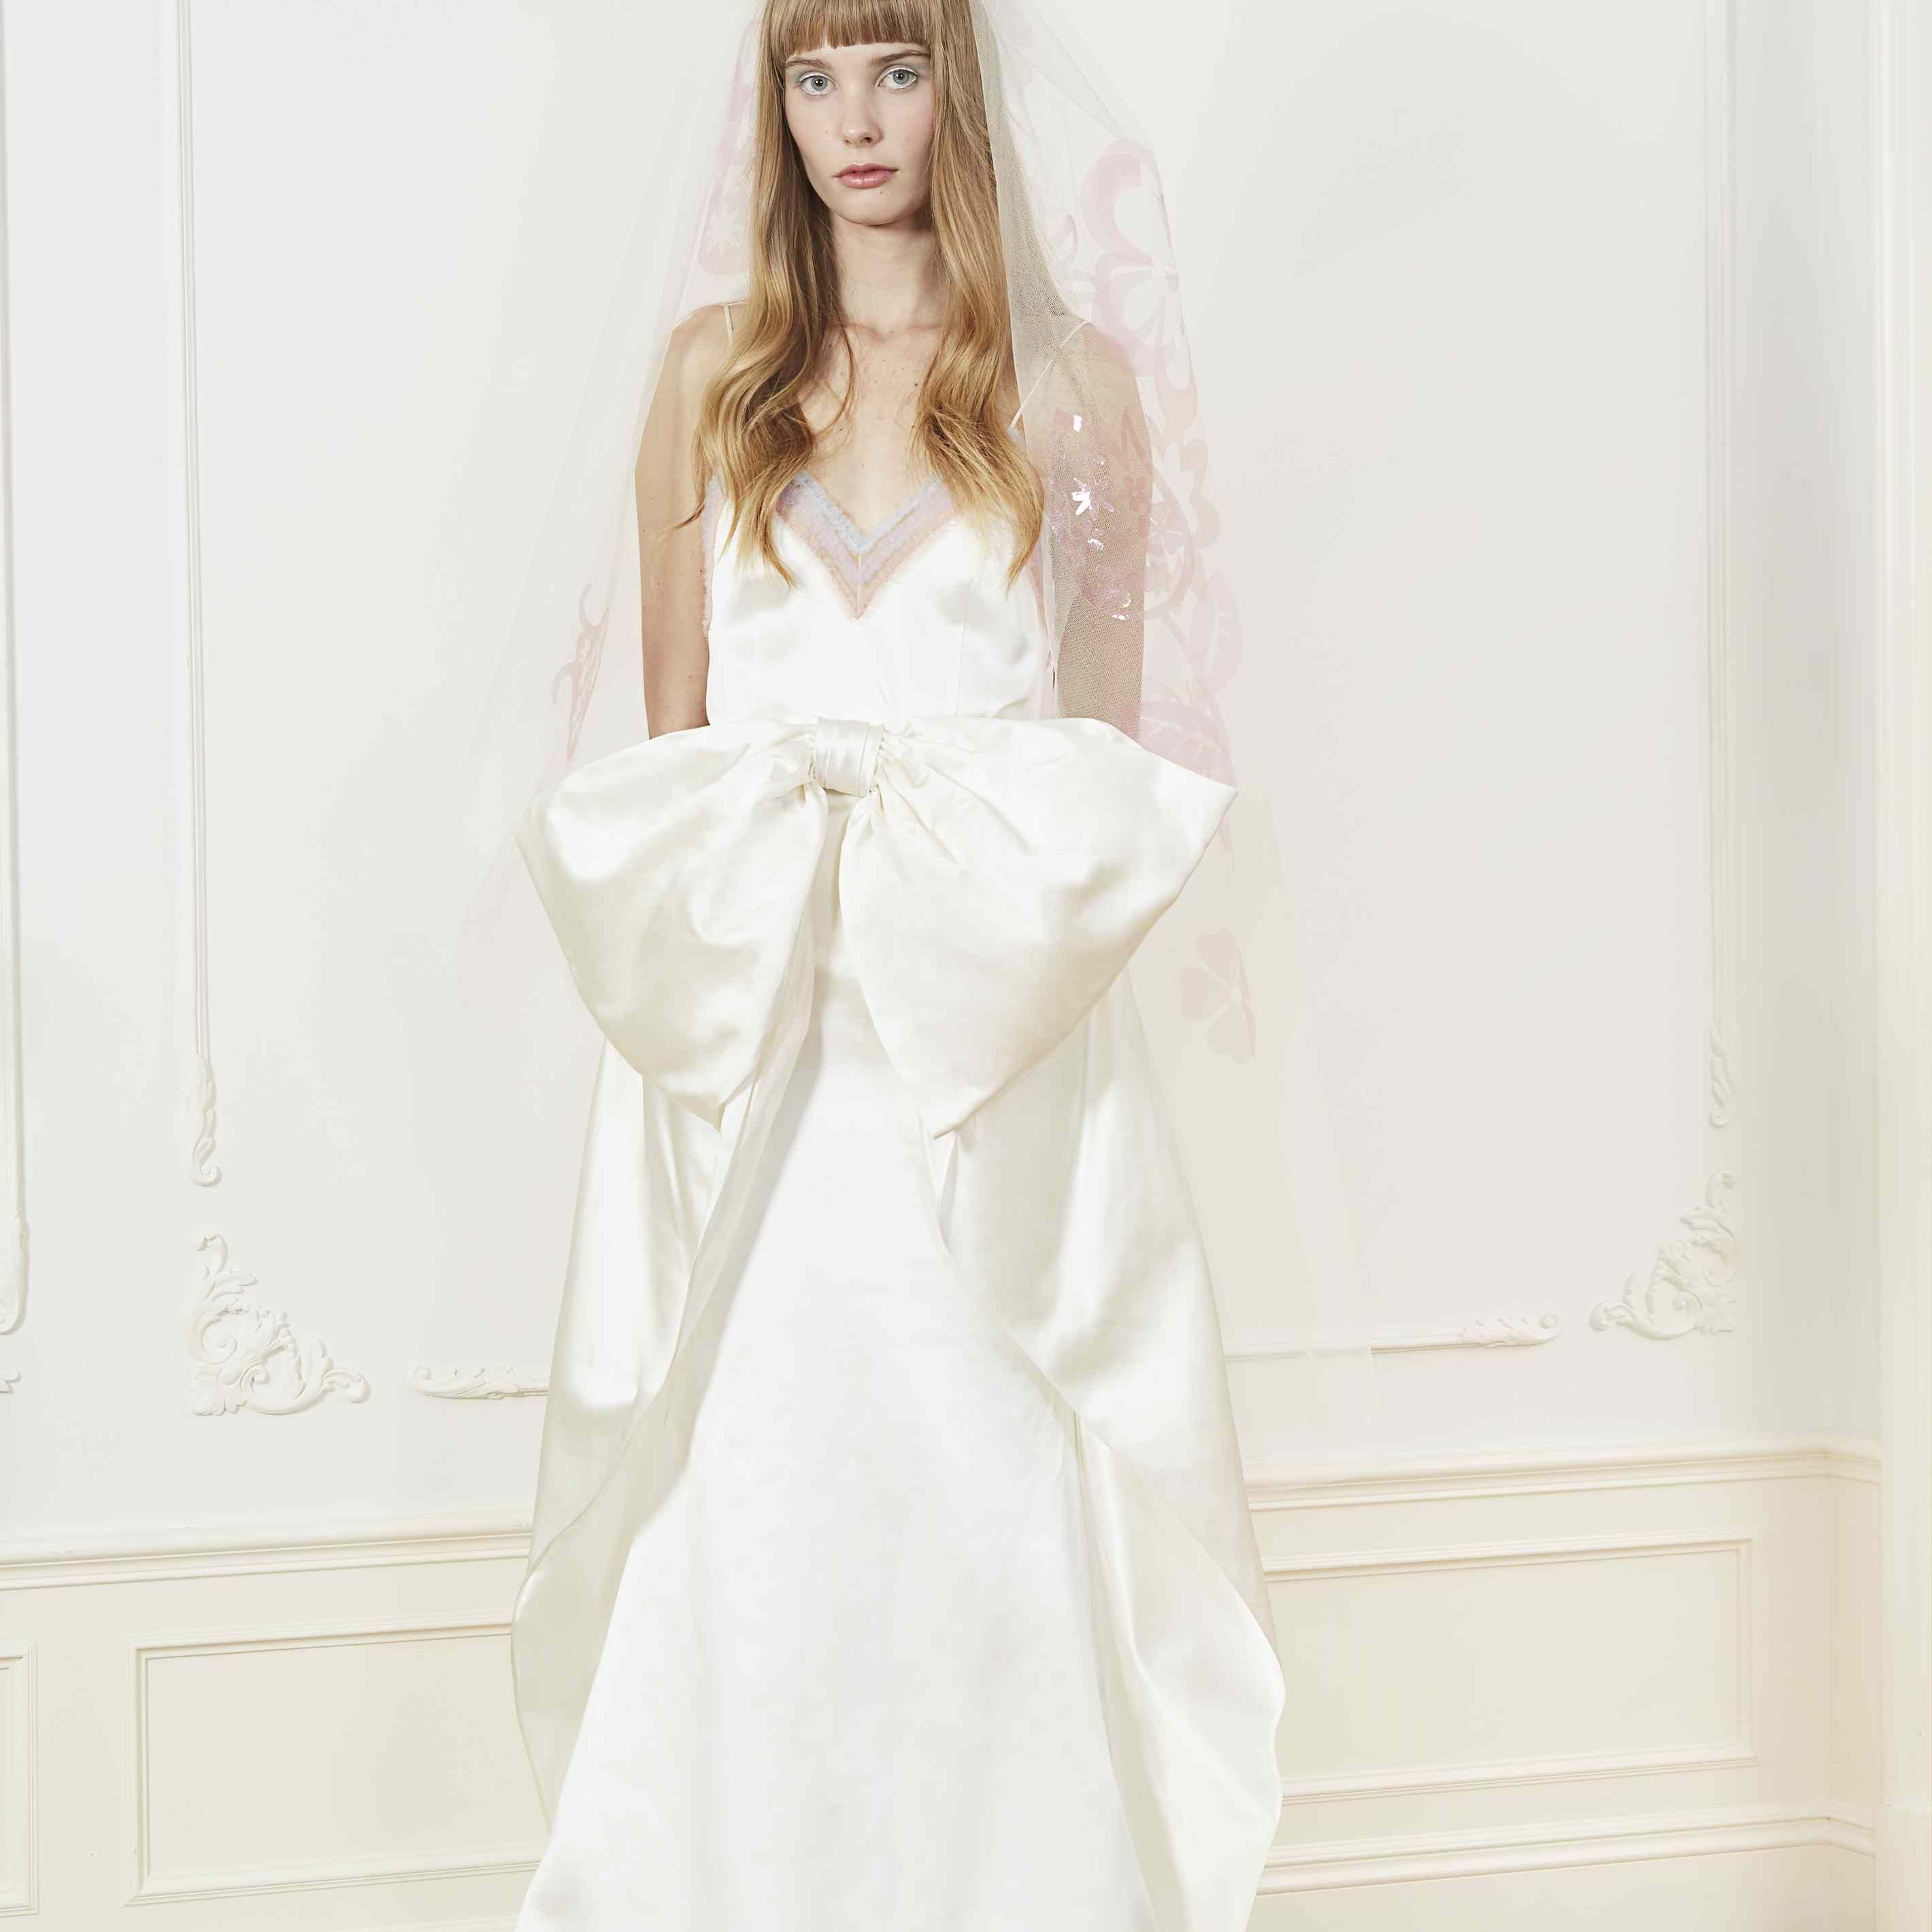 Model in two-piece wedding camisole and bow skirt